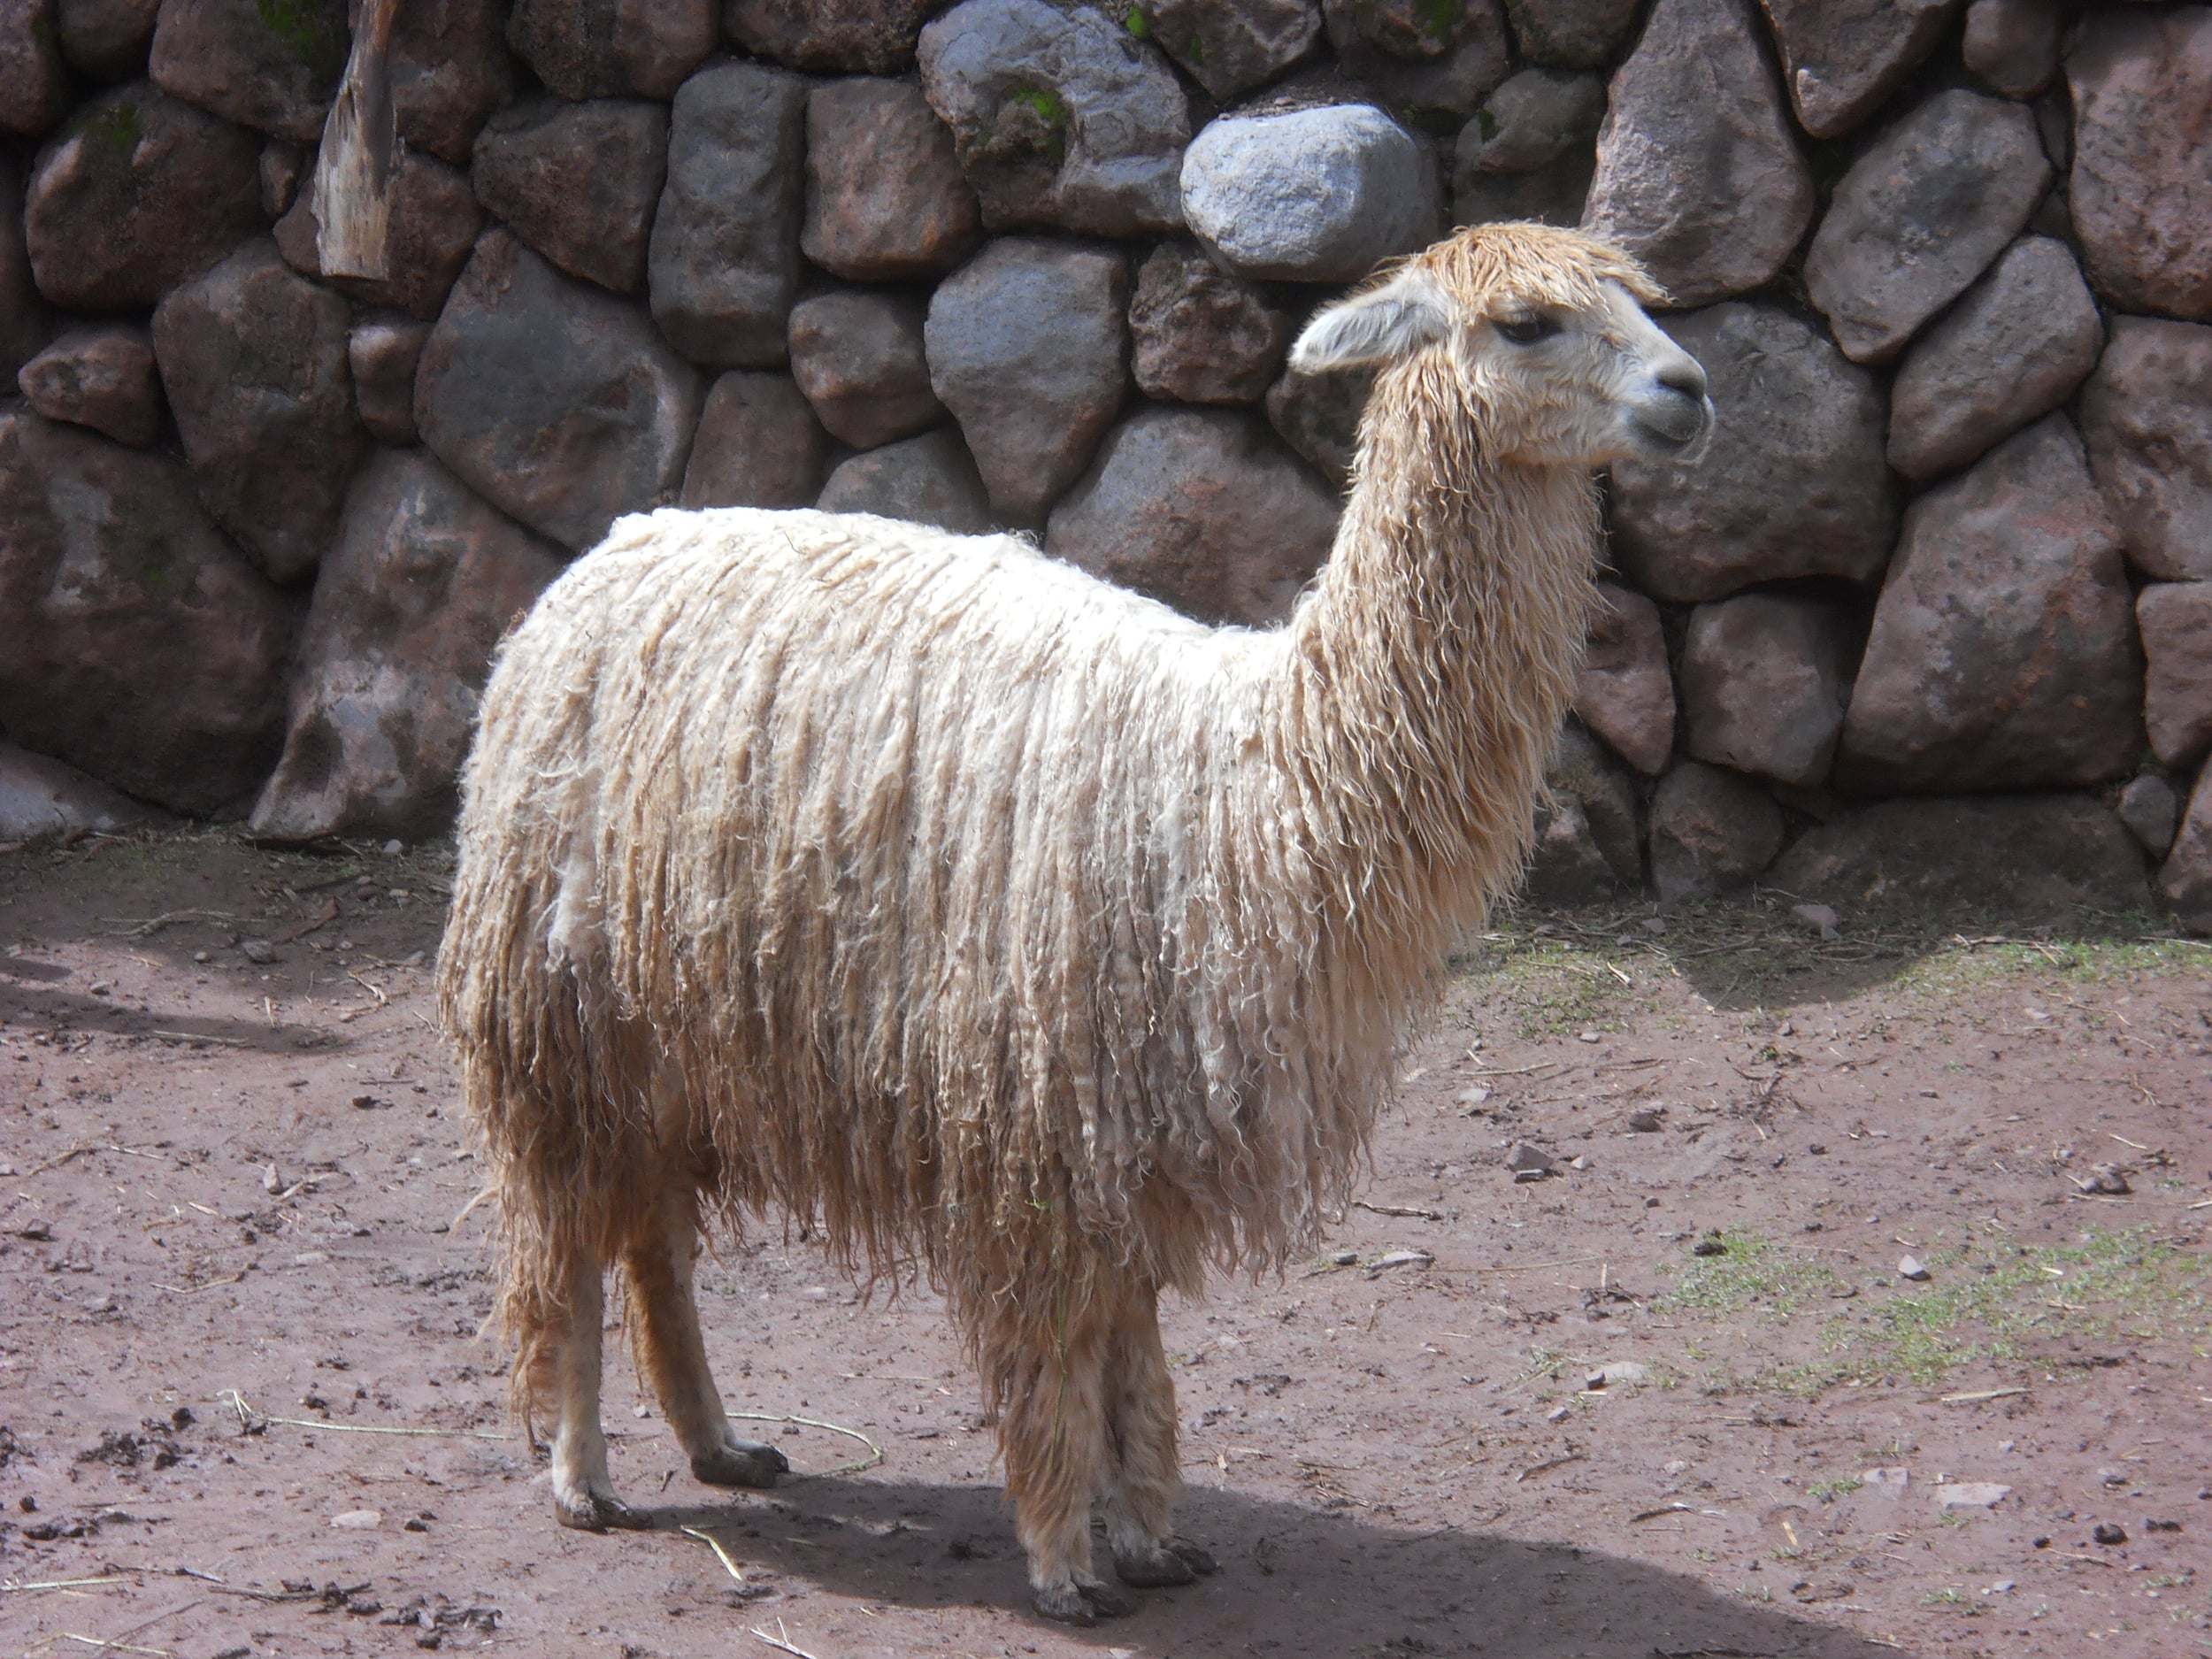 The most valuable threads of the alpacas are obtained when the camelid is between the ages three and six years of age. Photo: Fernando J. Rojas